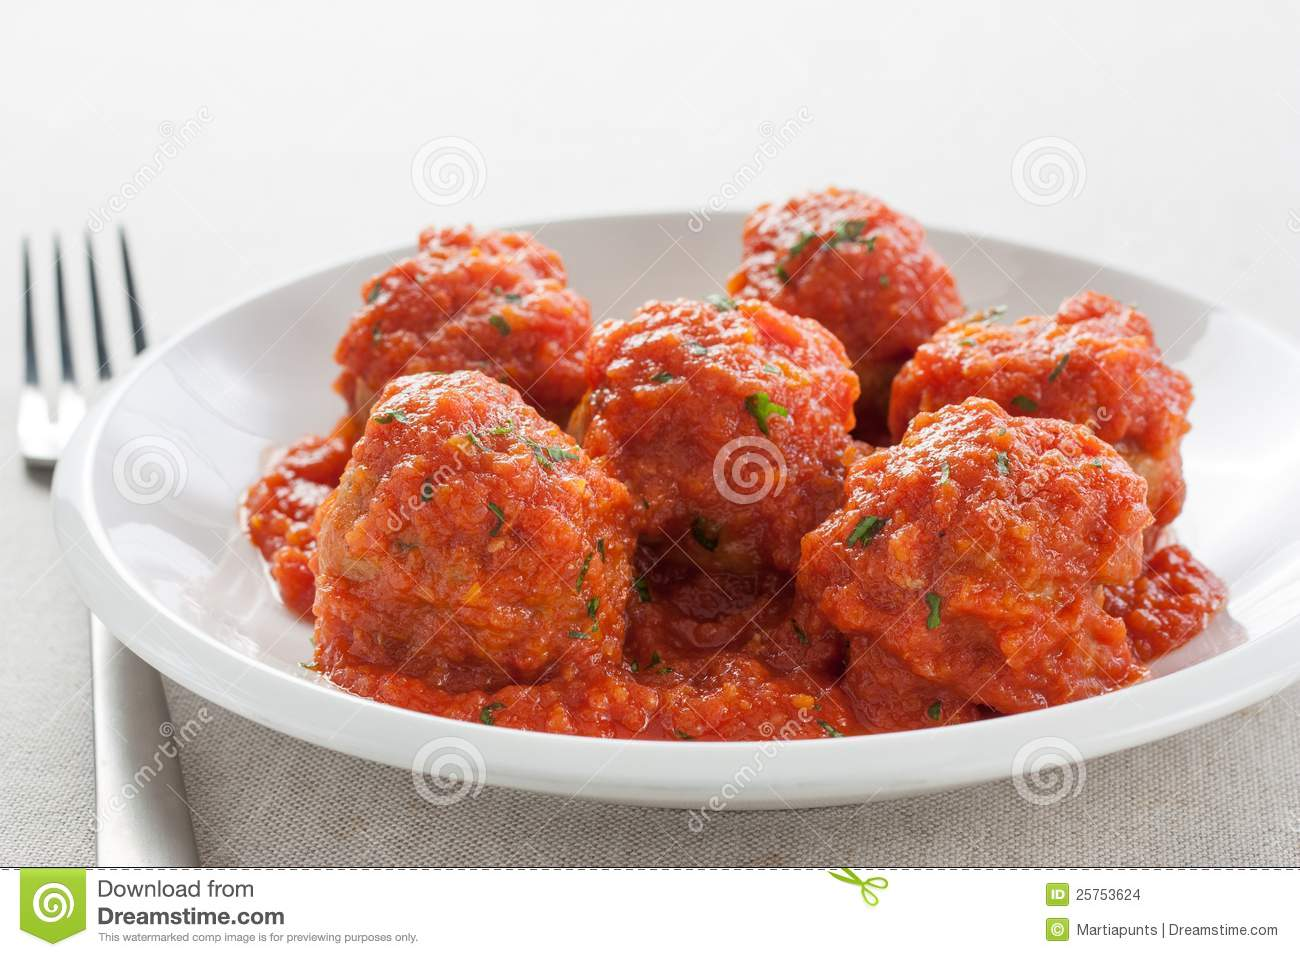 Meatballs With Tomato Sauce Stock Images - Image: 25753624